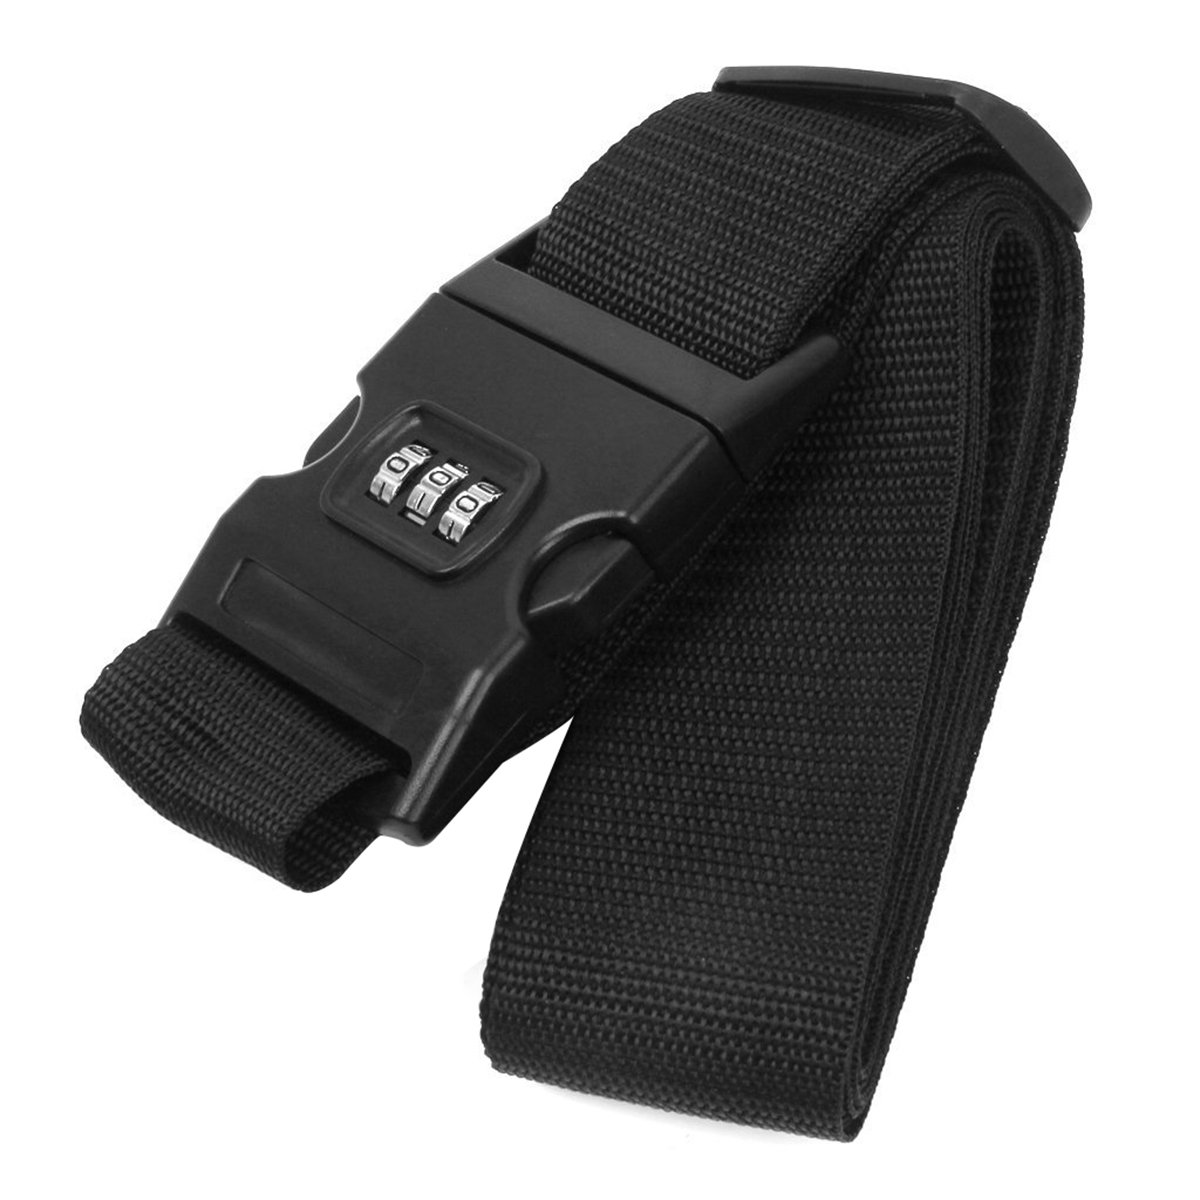 TINKSKY Travel Luggage Packing Belt Suitcase Box Strap Luggage Safety Strap with Combination Lock (Black)